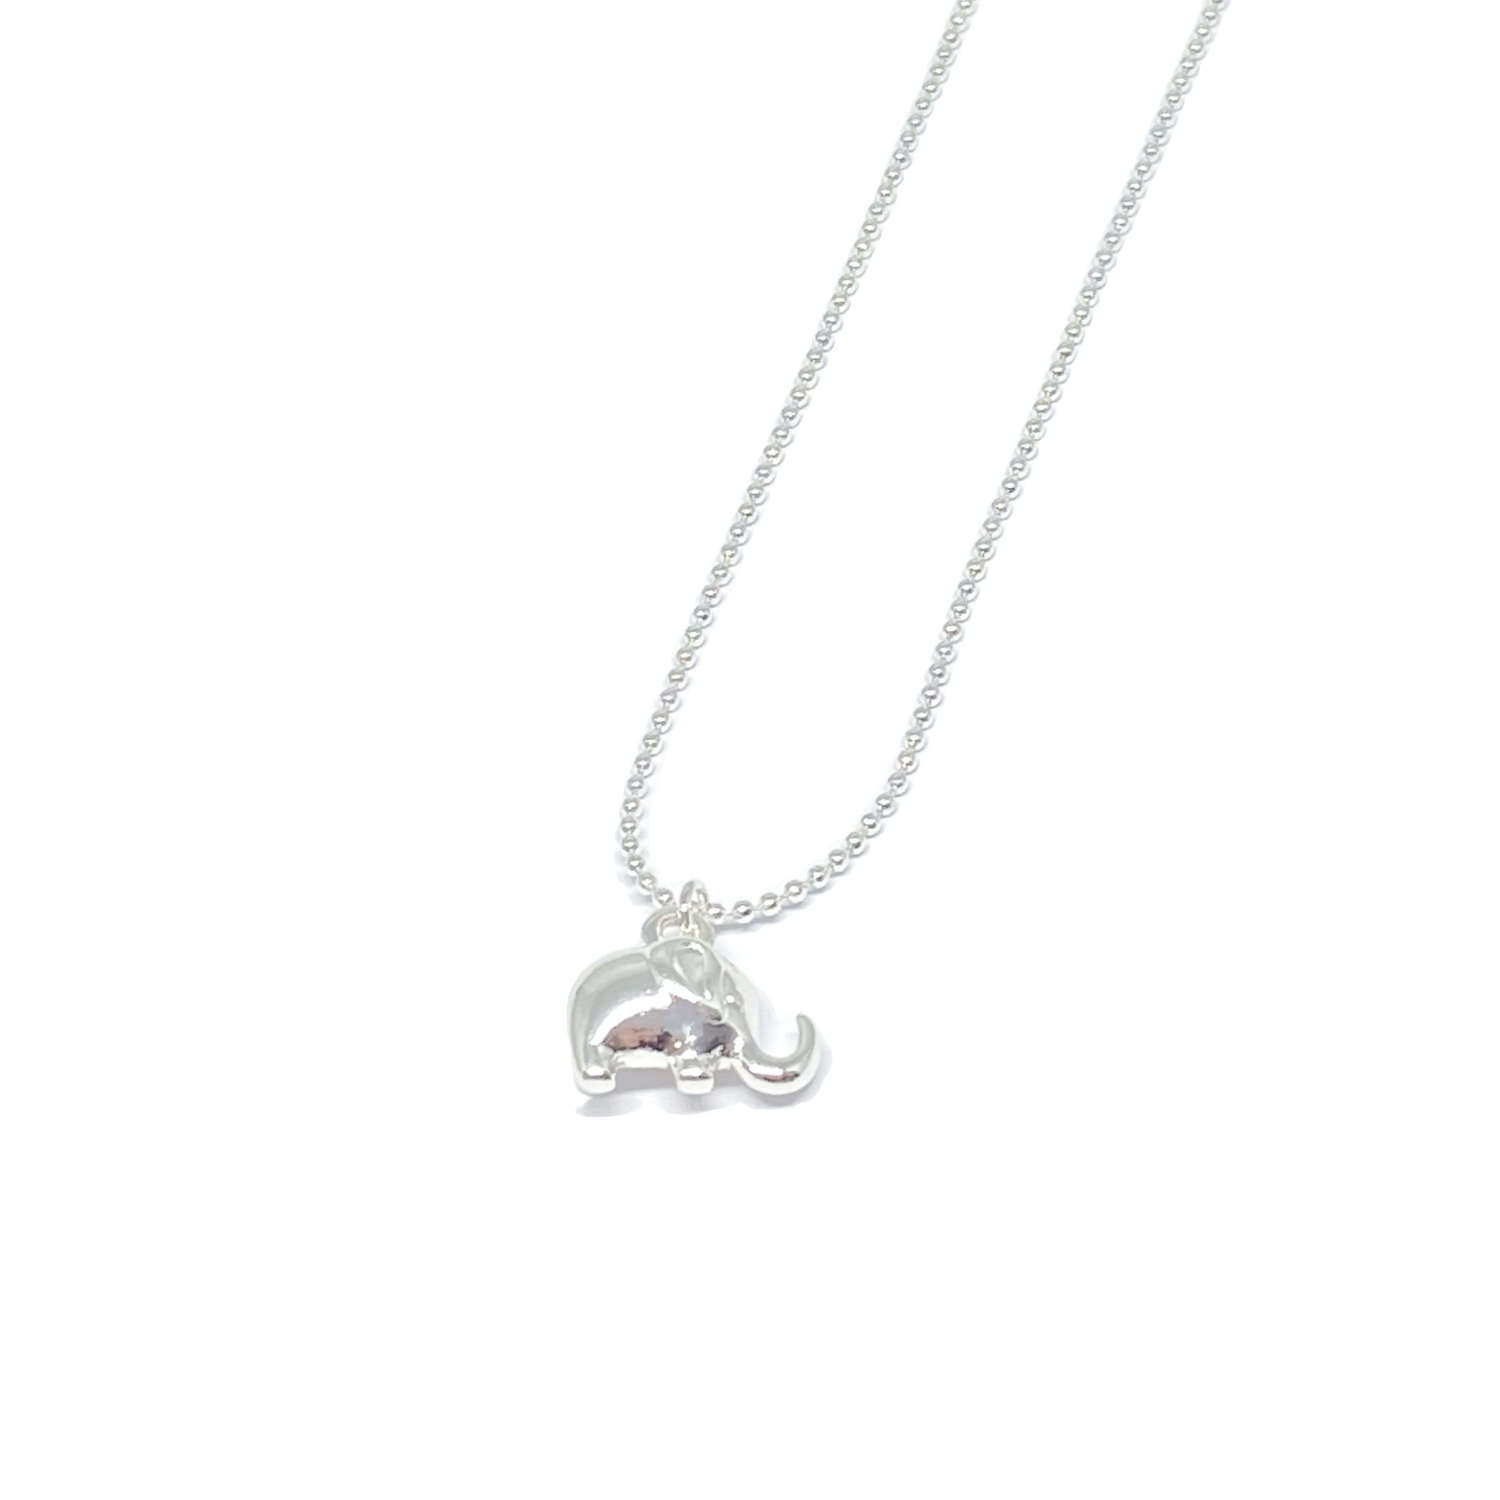 Daisy Elephant Necklace - Silver